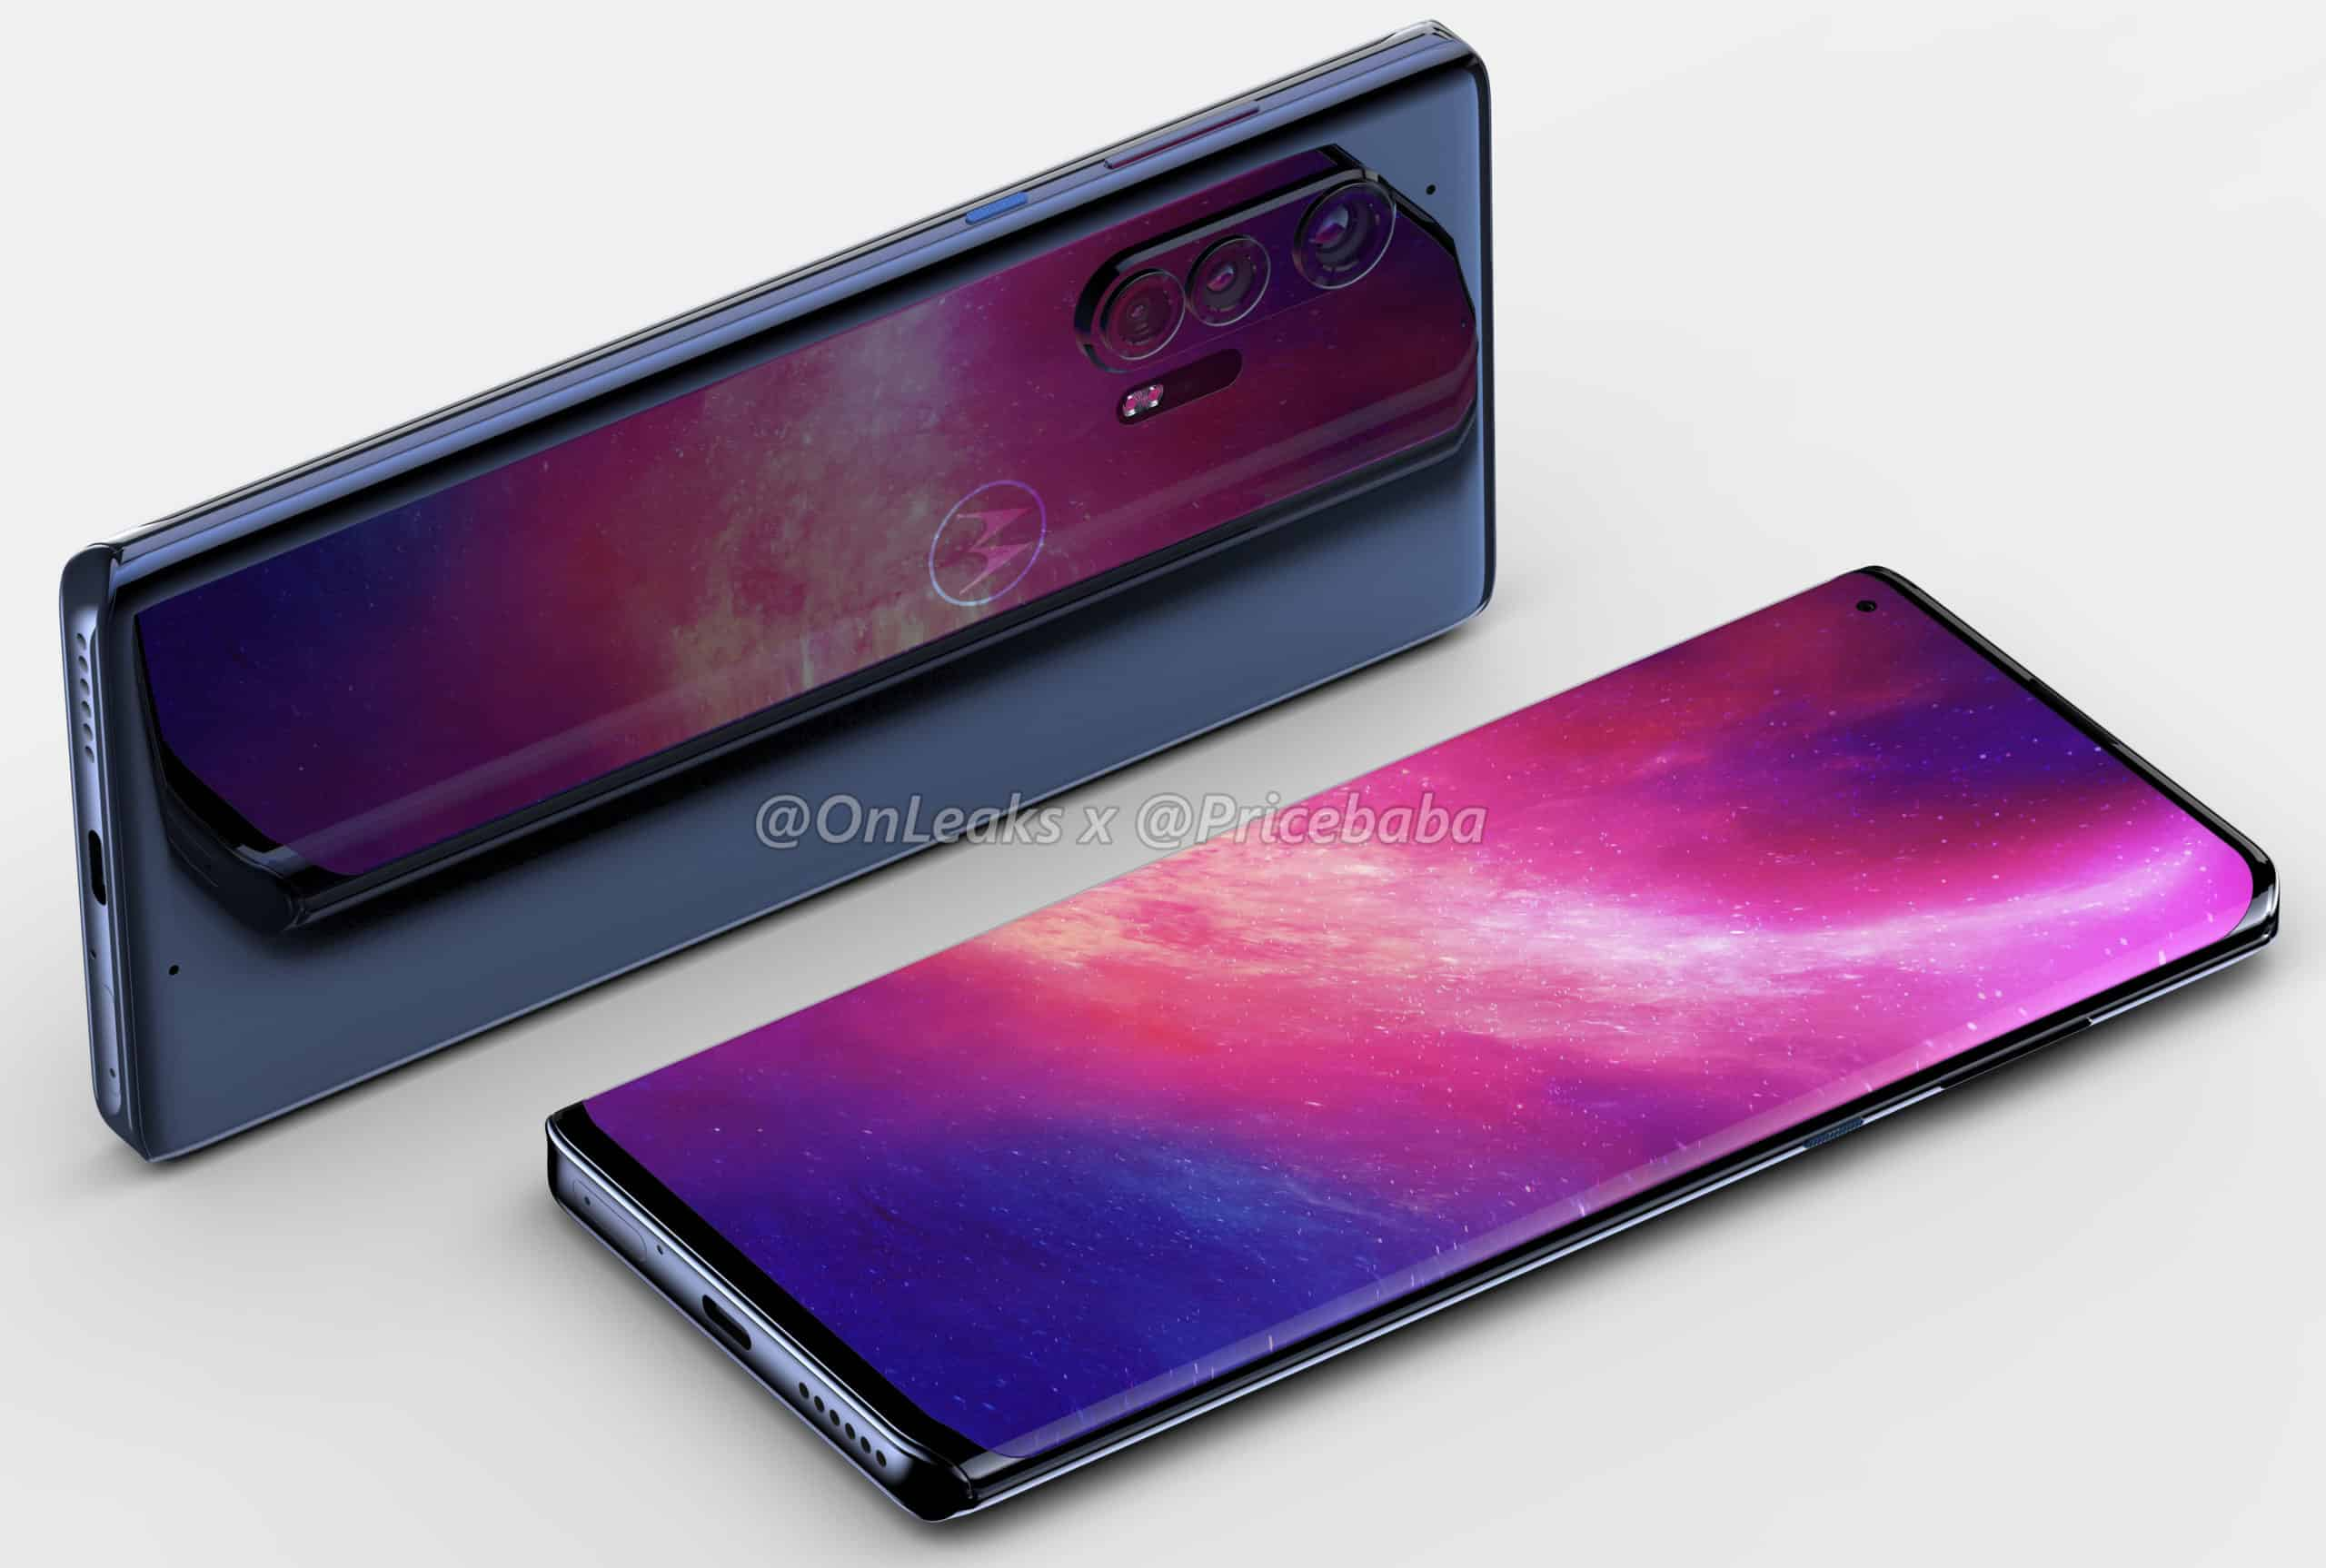 Motorola Edge Plus render leak 2